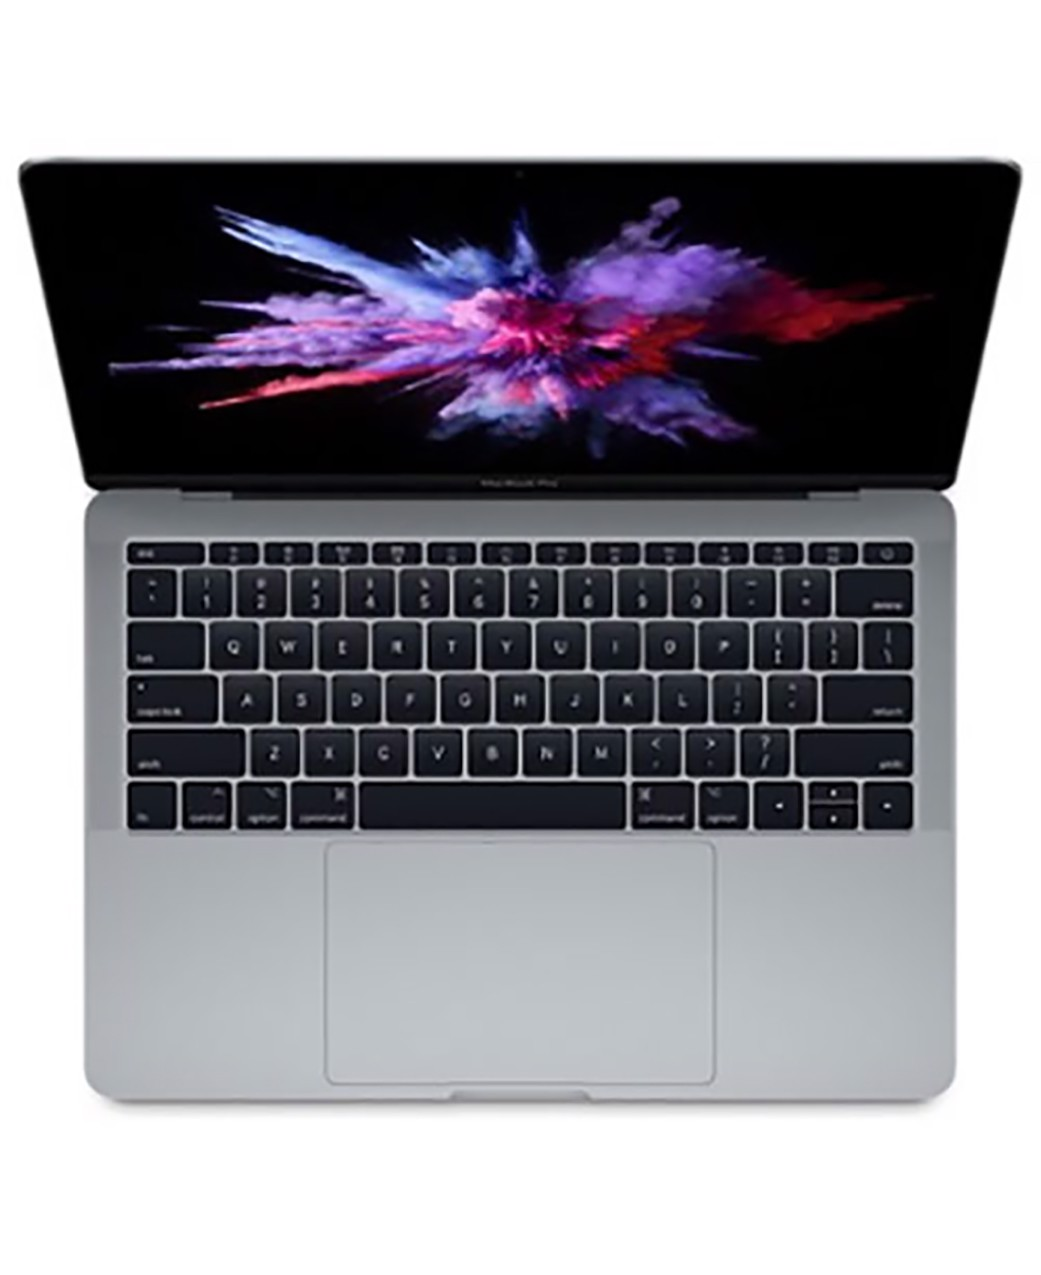 Macbook Pro 13.3 inch 256GB - Core i5 RAM 8GB - 2017